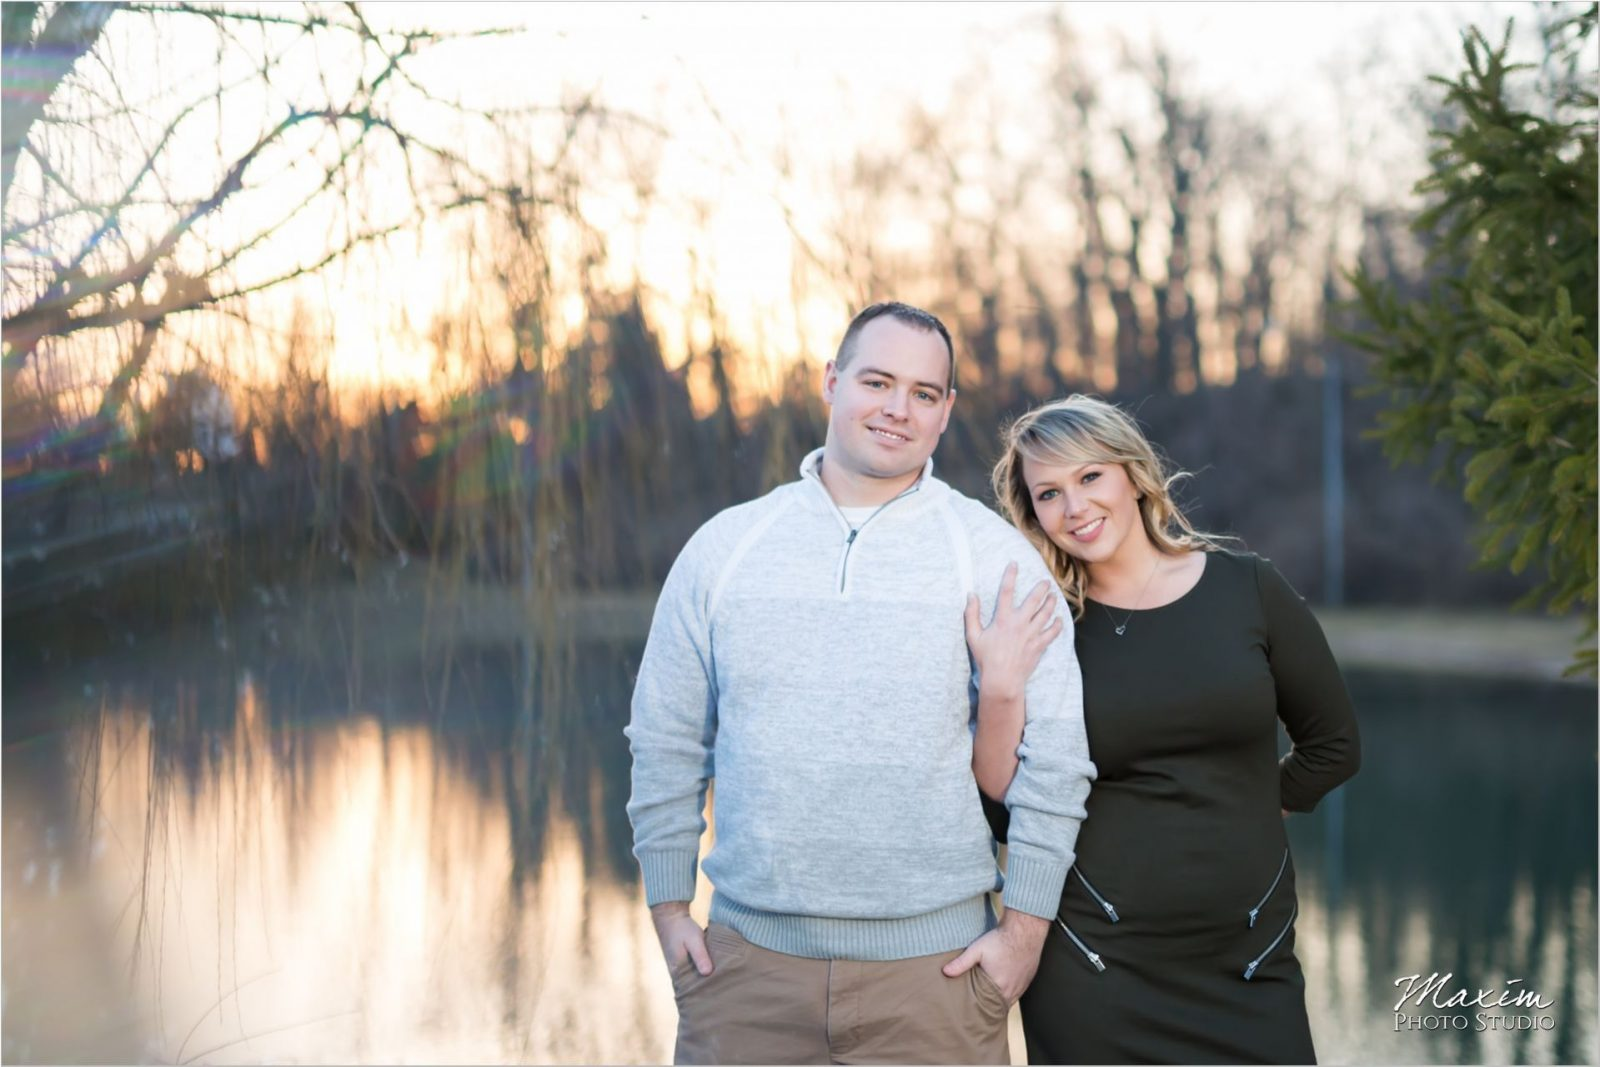 Dayton Wedding Photographers Faurot Park Sunset engagement